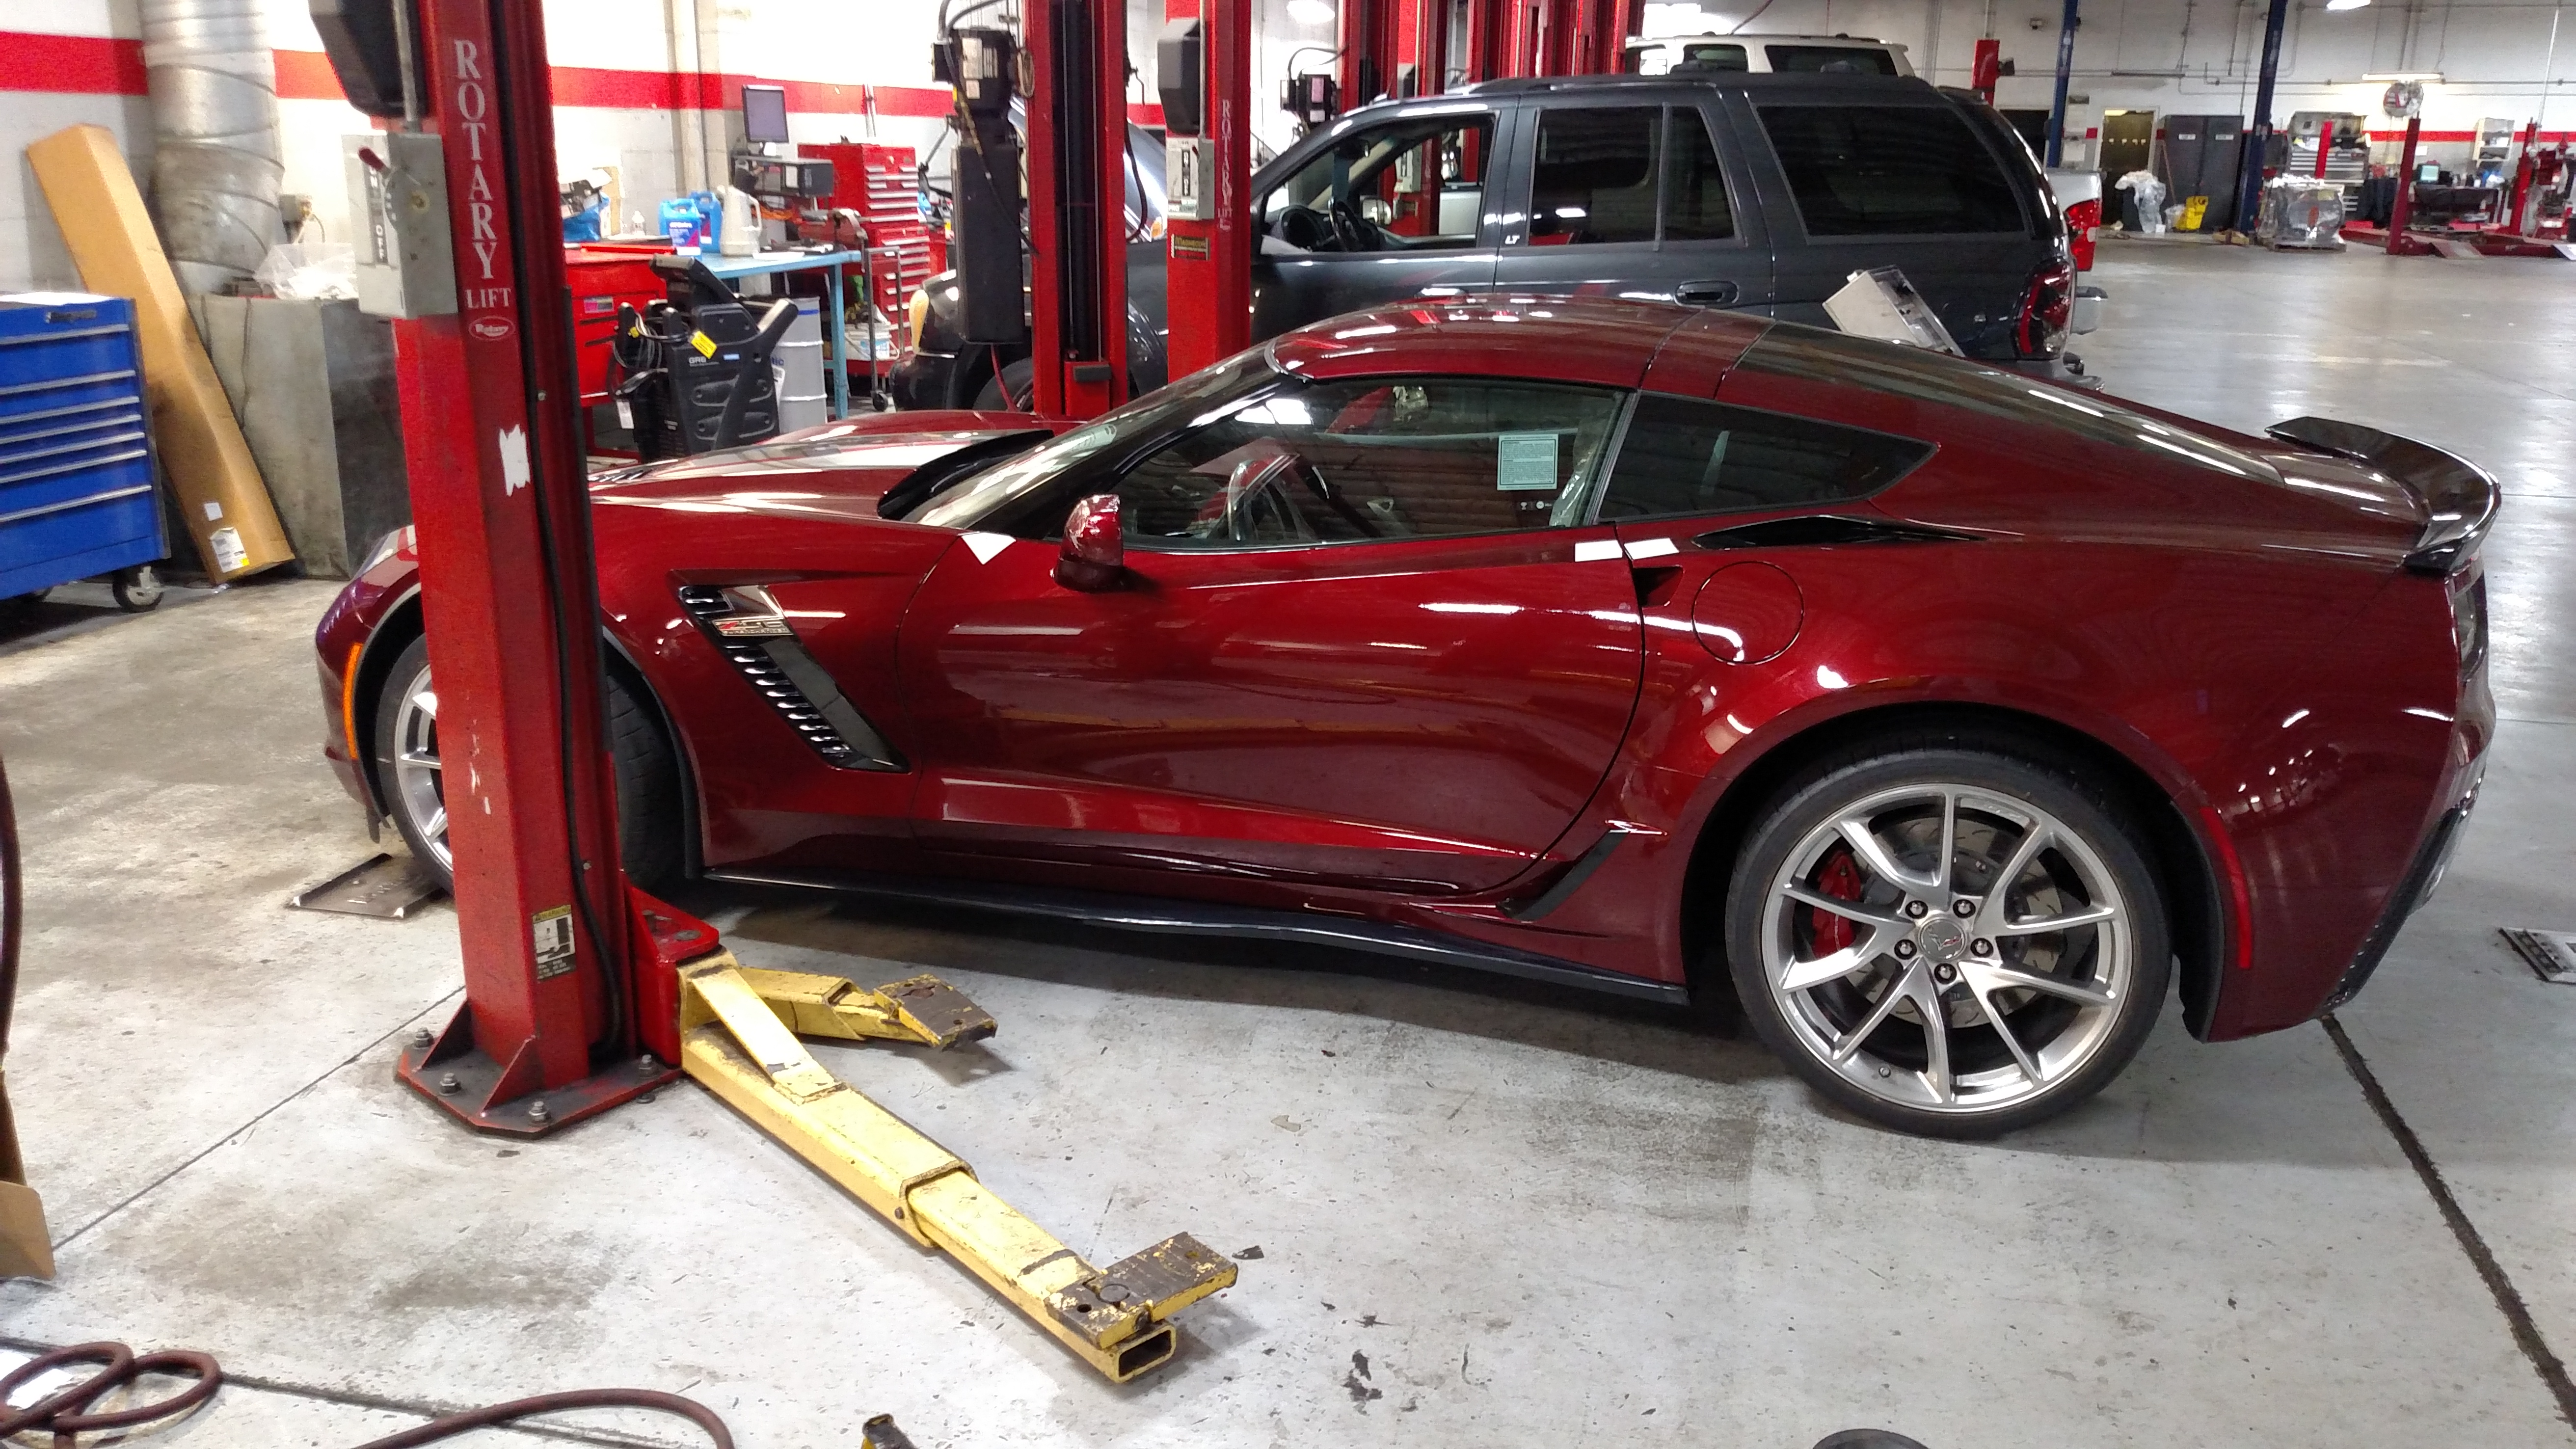 name img_20160218_175640605jpg views 684 size 444 mb - 2016 Corvette Stingray And Z06 Spice Red Design Package